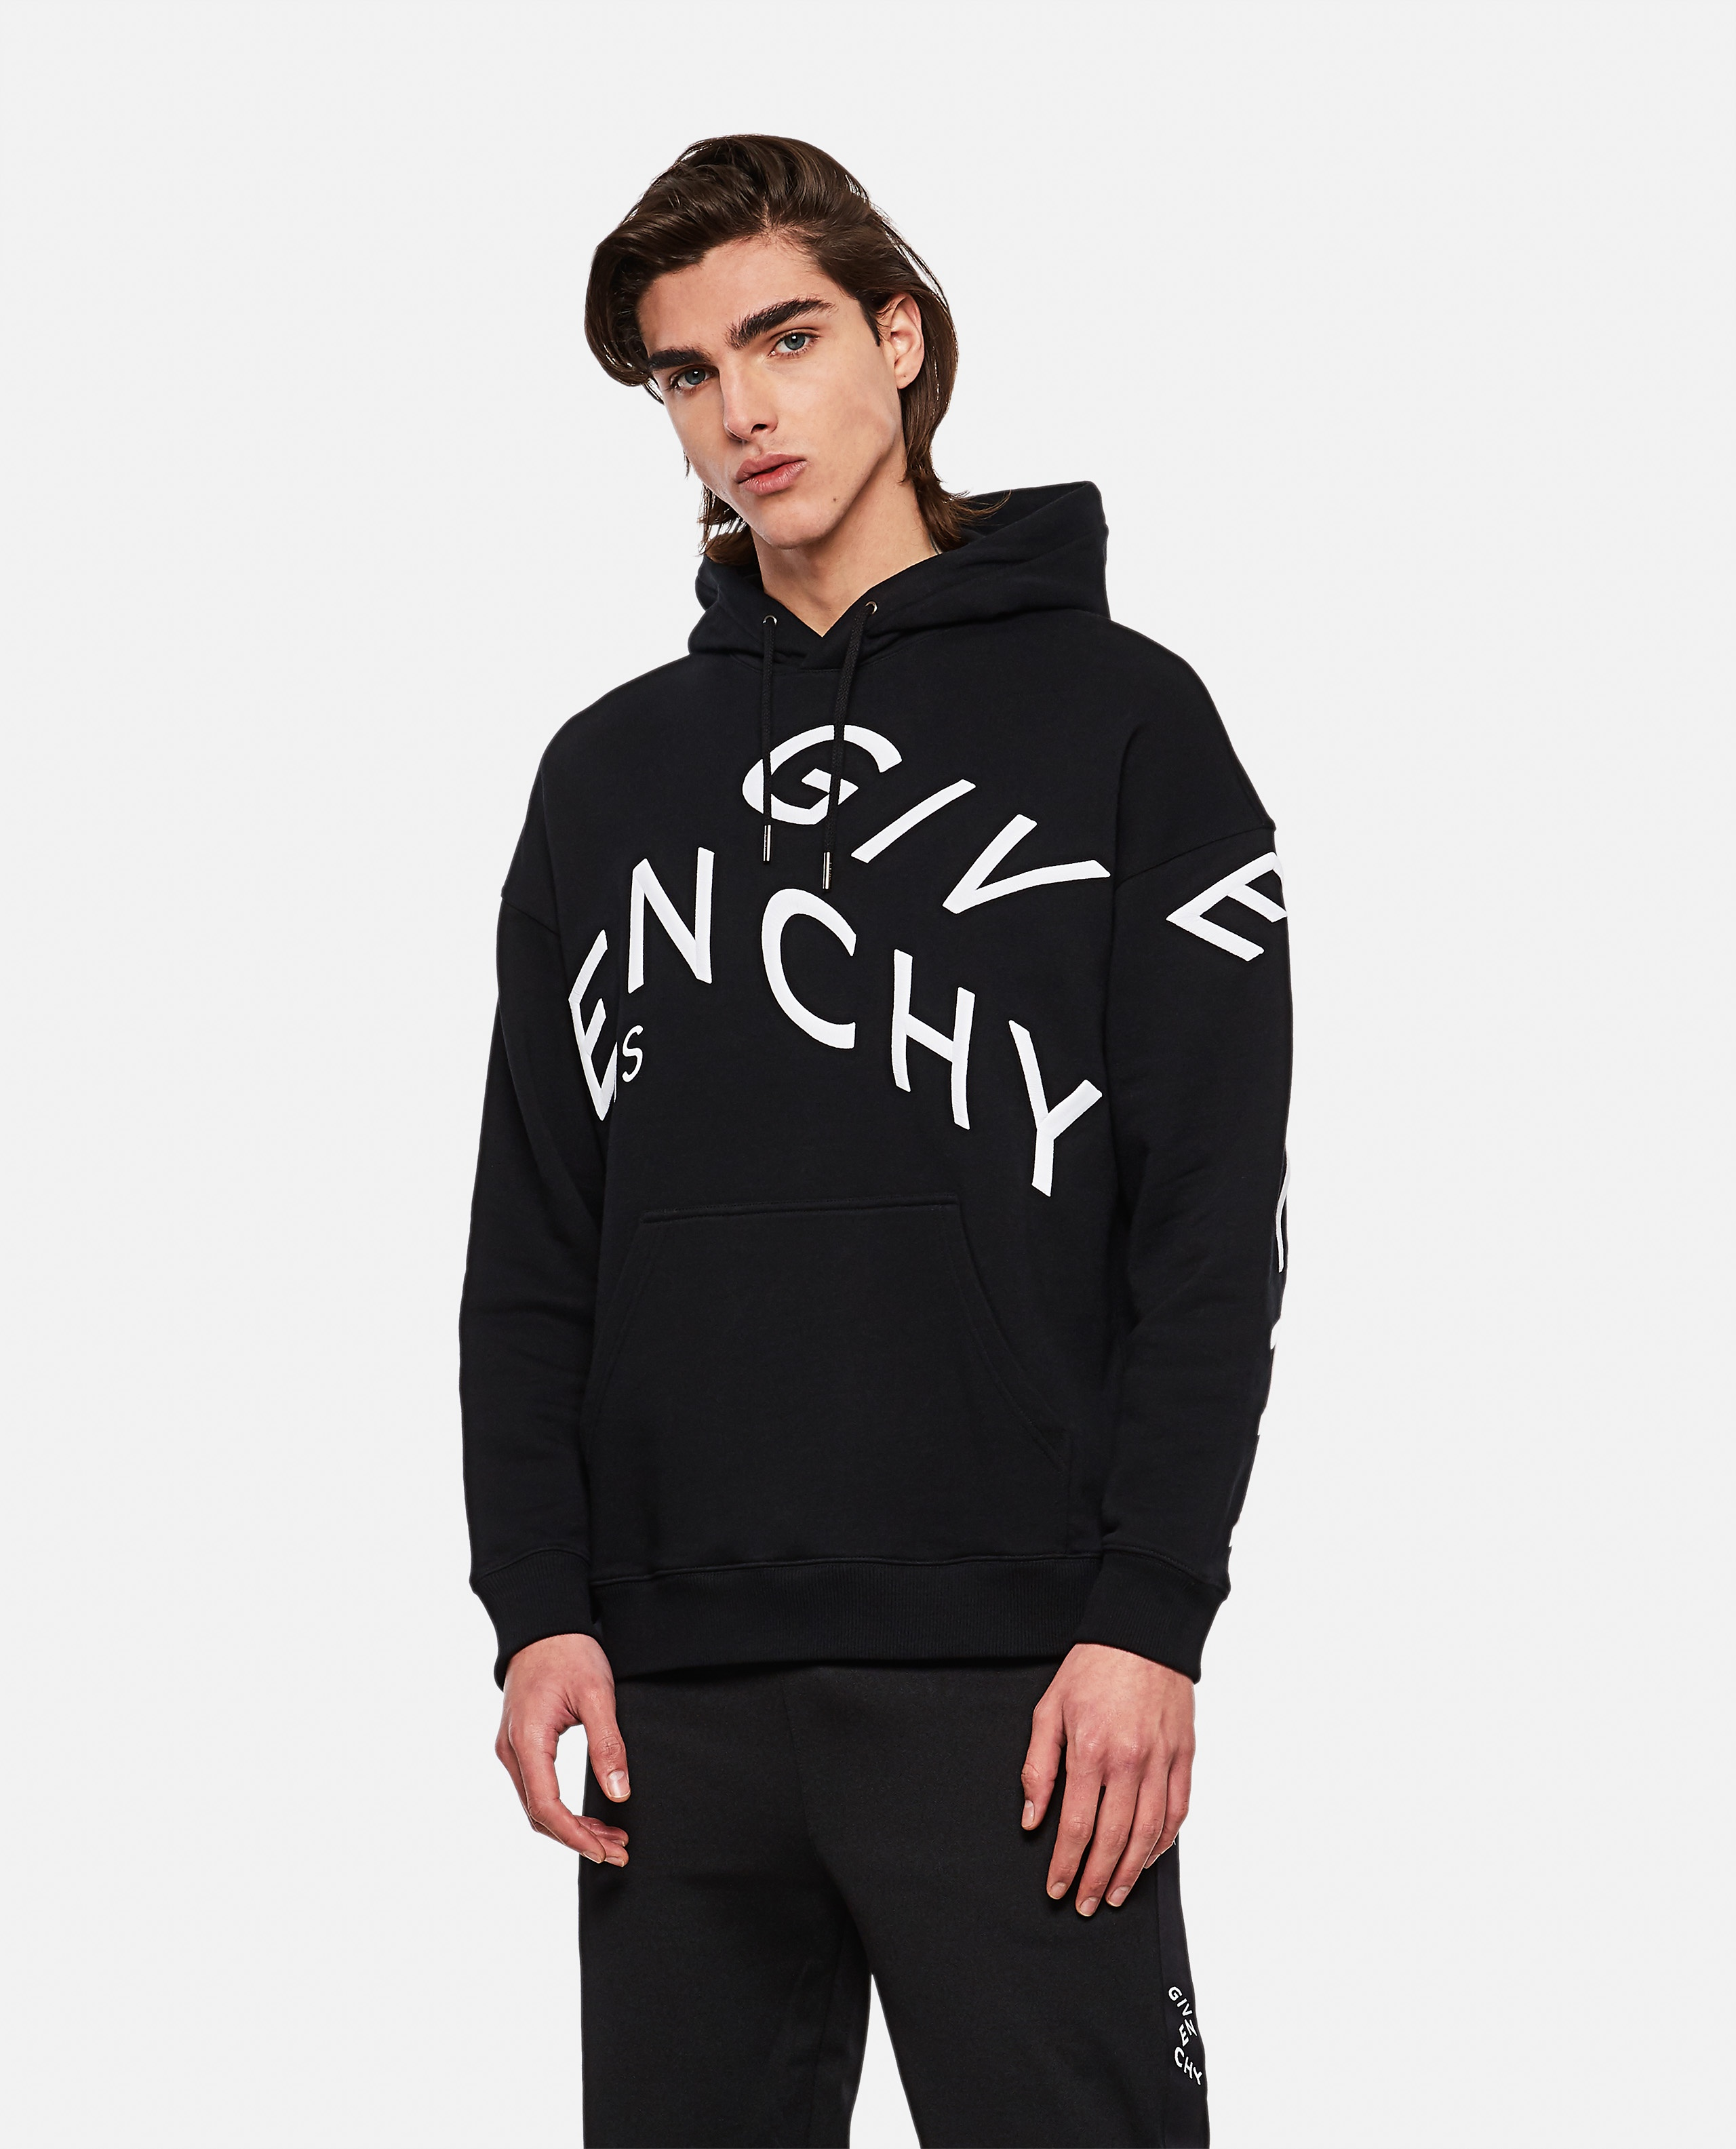 Refracted sweatshirt with embroidery Men Givenchy 000253110037400 1